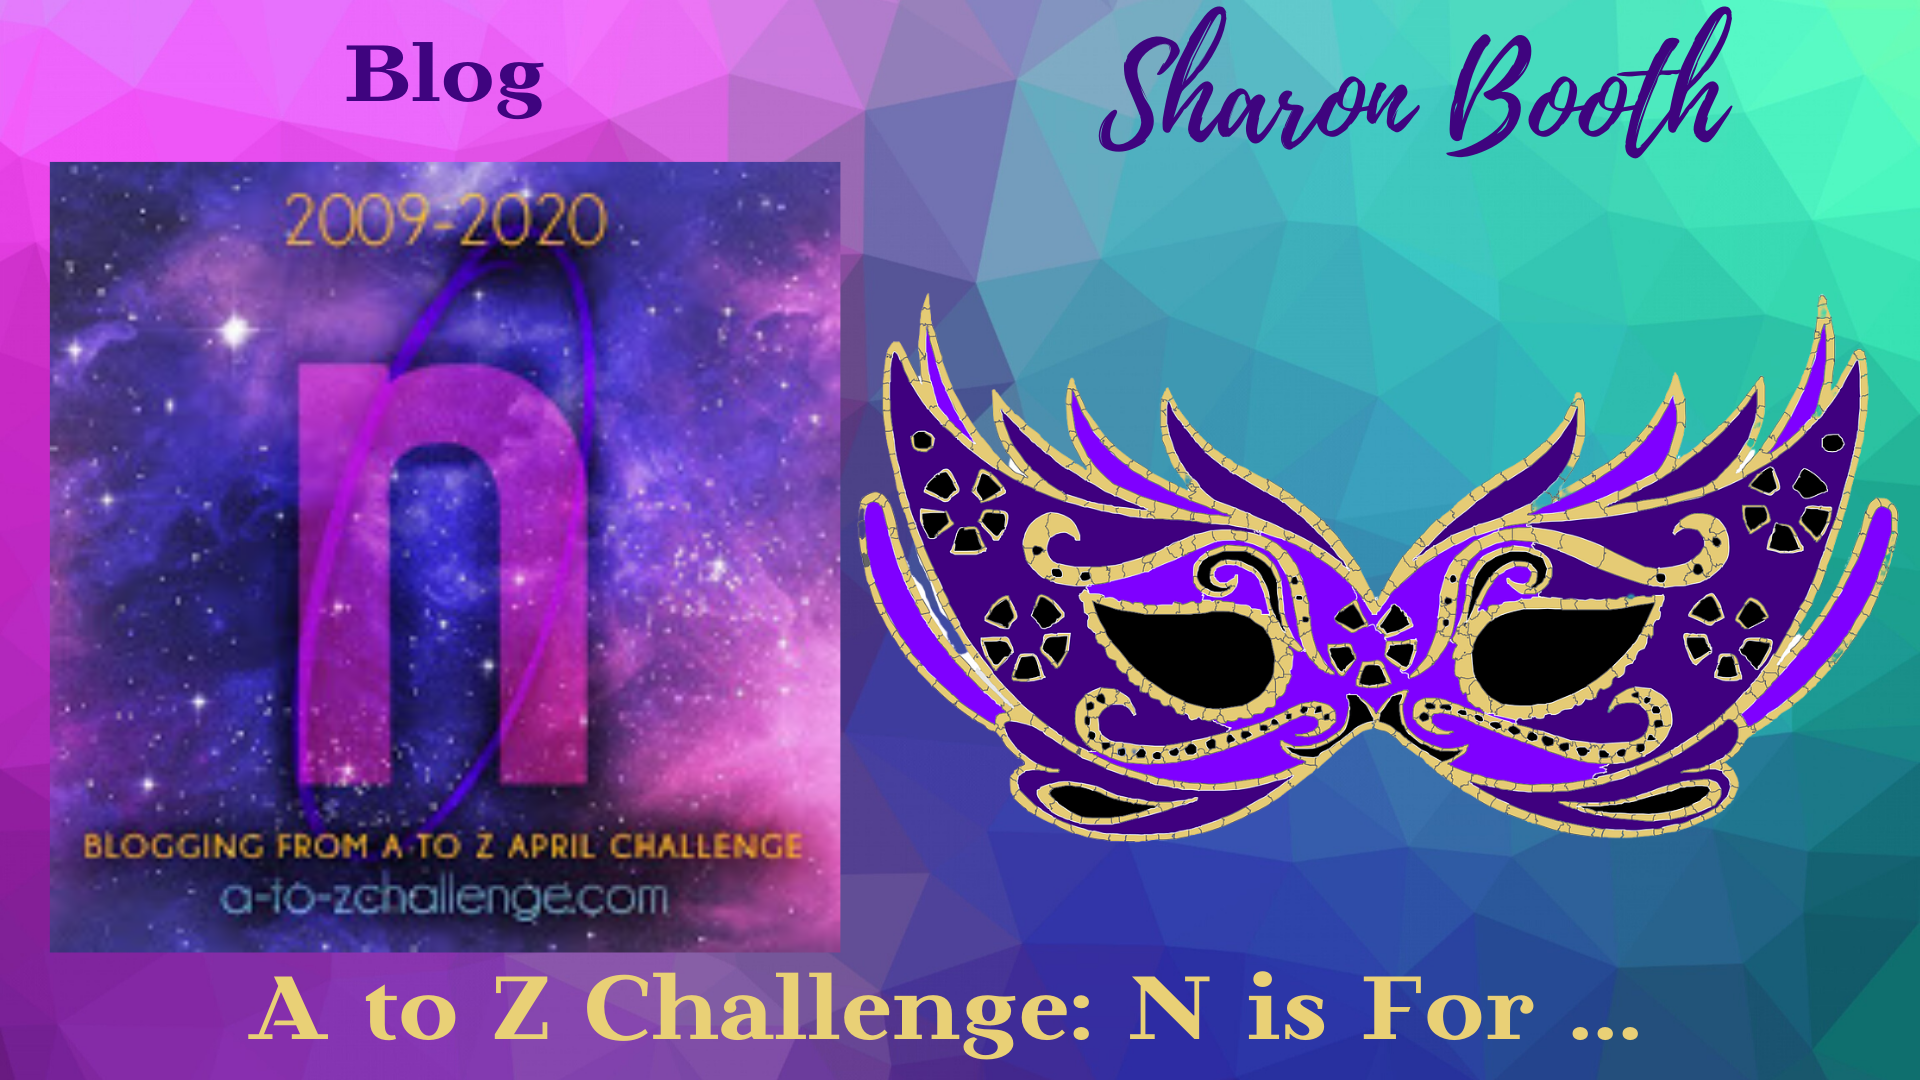 #AtoZChallenge N is For …